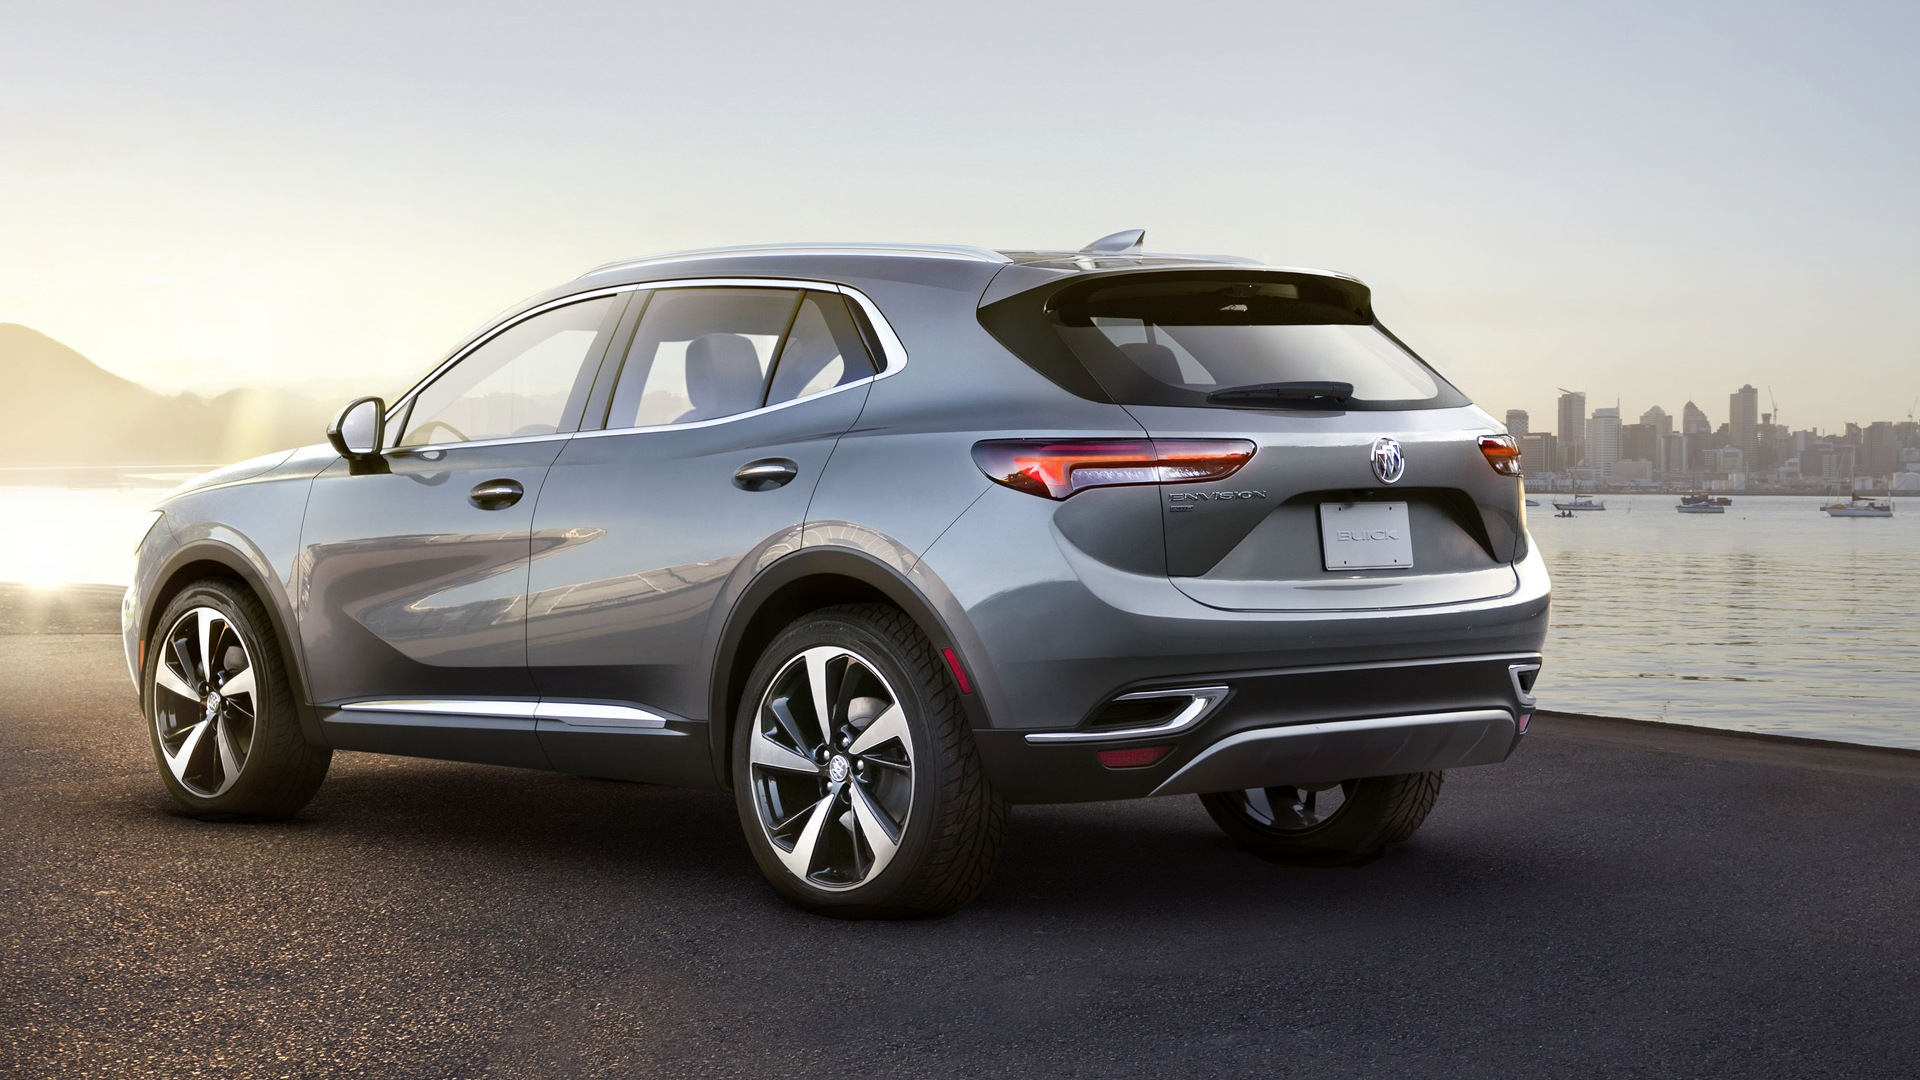 2021 Buick Envision Preview: Bold New Look For Buick's Small Suv New 2021 Buick Envision Engine Options, Fwd, Features